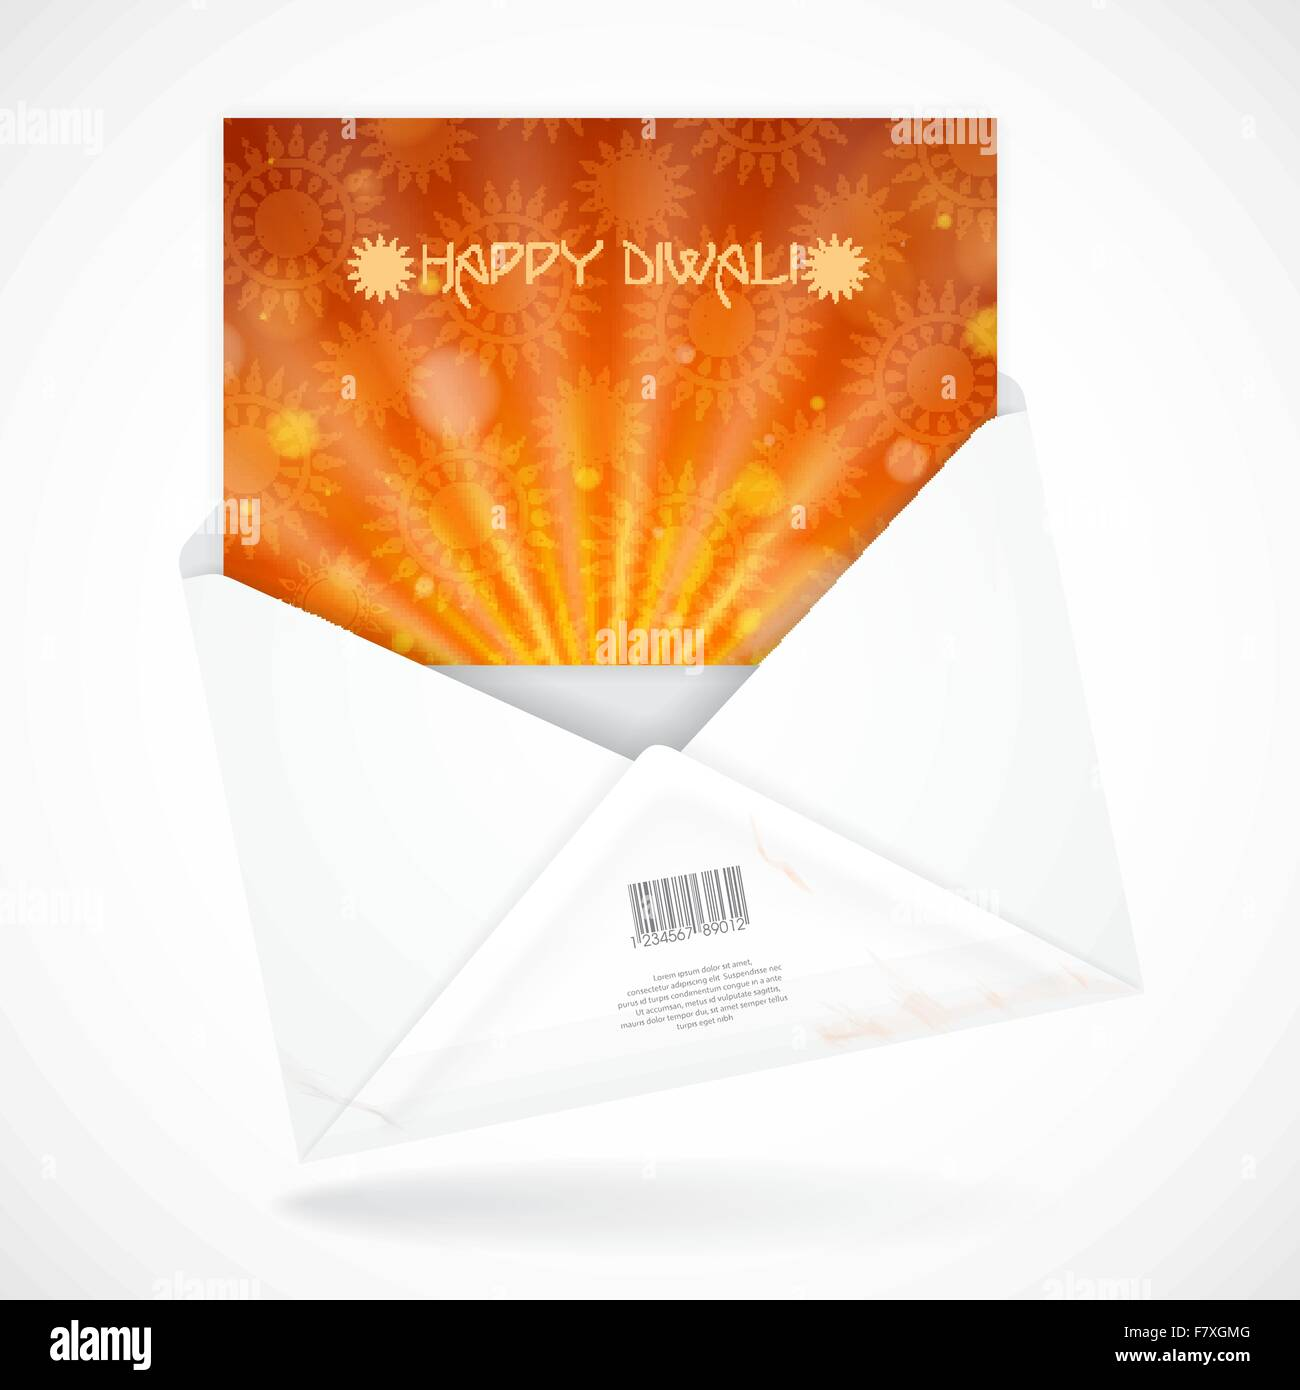 Postal Envelopes With Greeting Card - Stock Vector